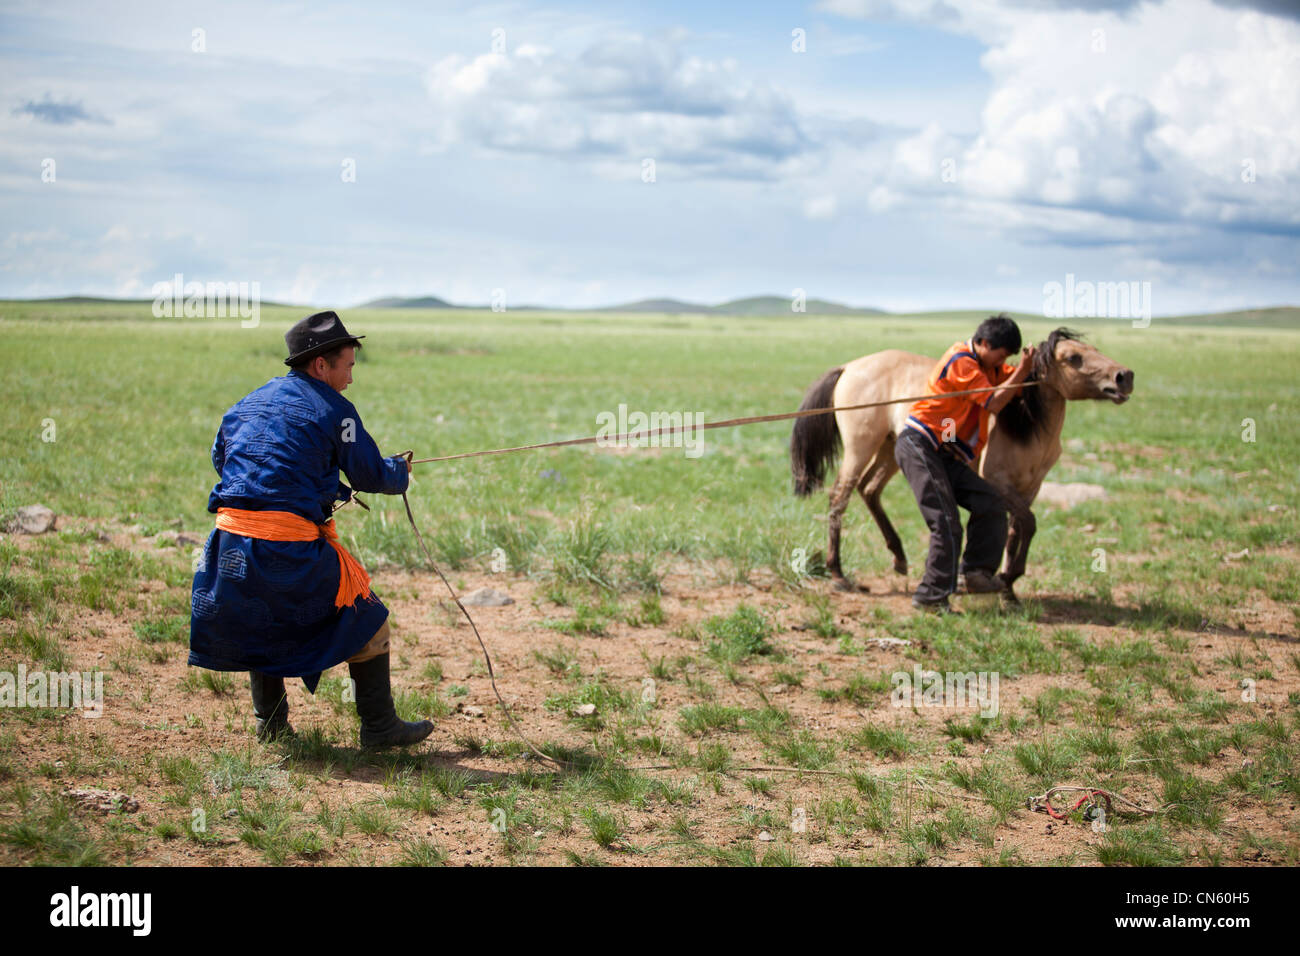 Tame the horse on the steppe, khuduu aral, khentii province, Mongolia - Stock Image